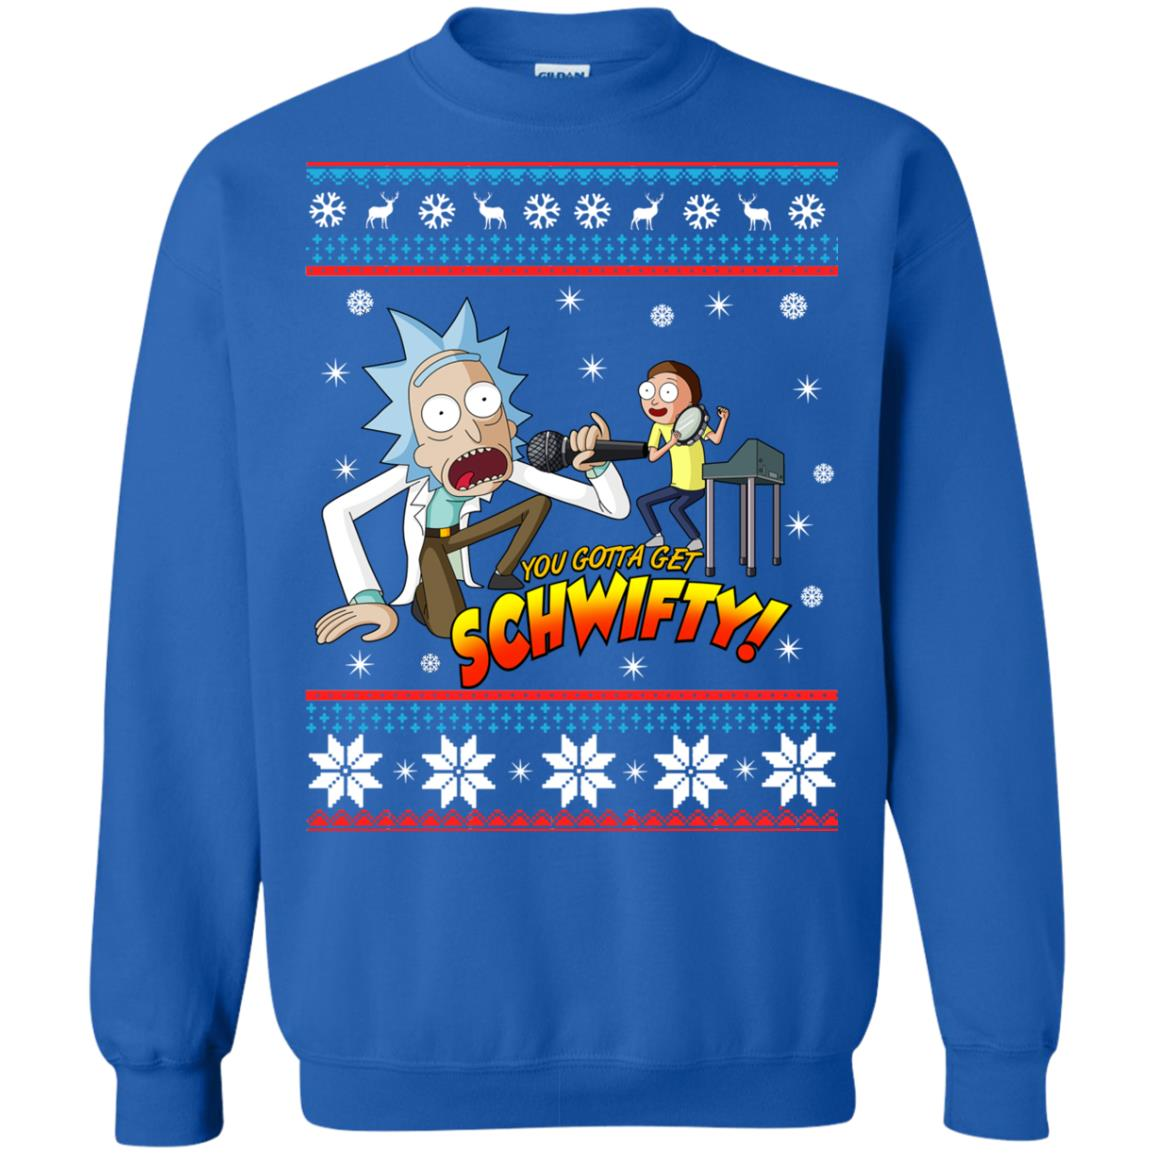 image 2419 - You gotta get Schwifty Ugly Christmas sweater, hoodie